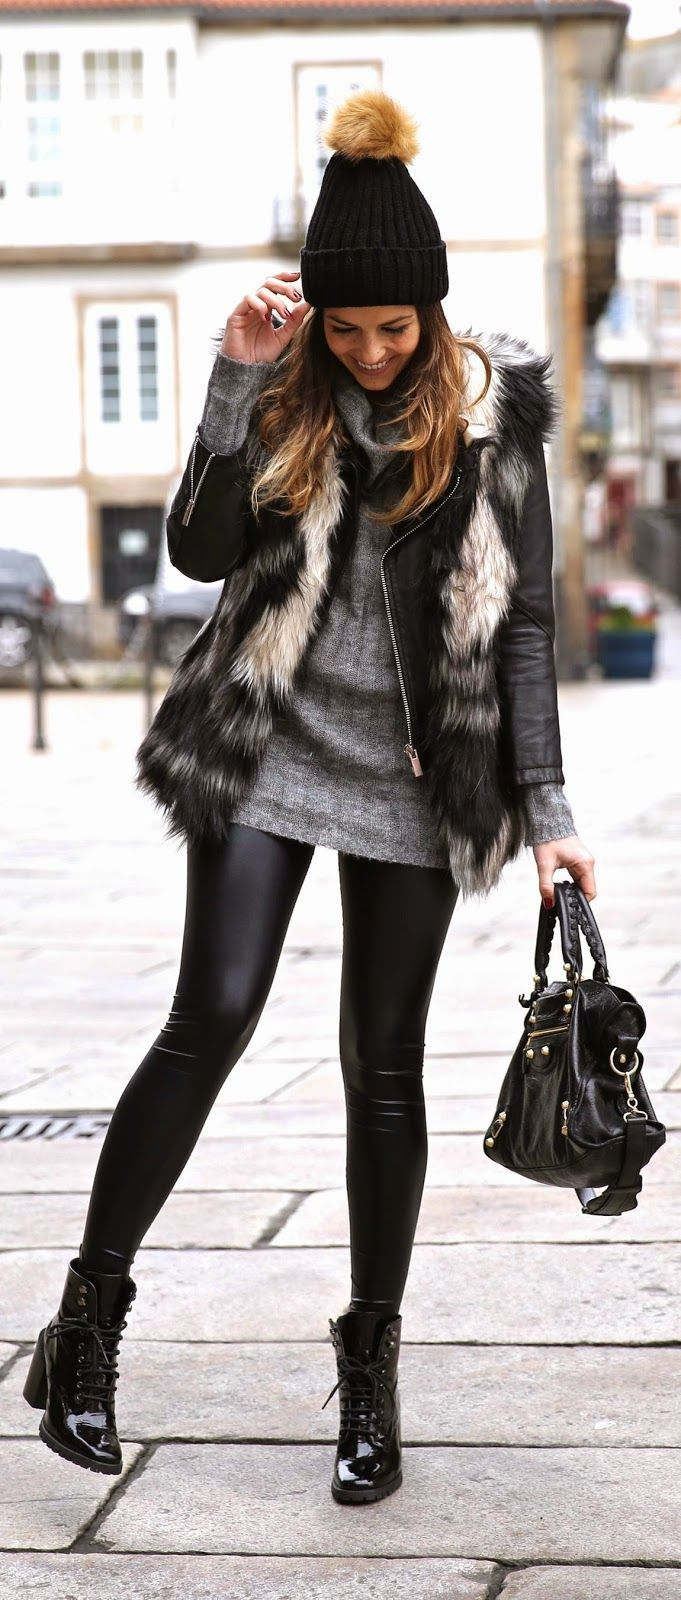 100 WINTER OUTFITS TO INSPIRE YOURSELF Wachabuy waysify